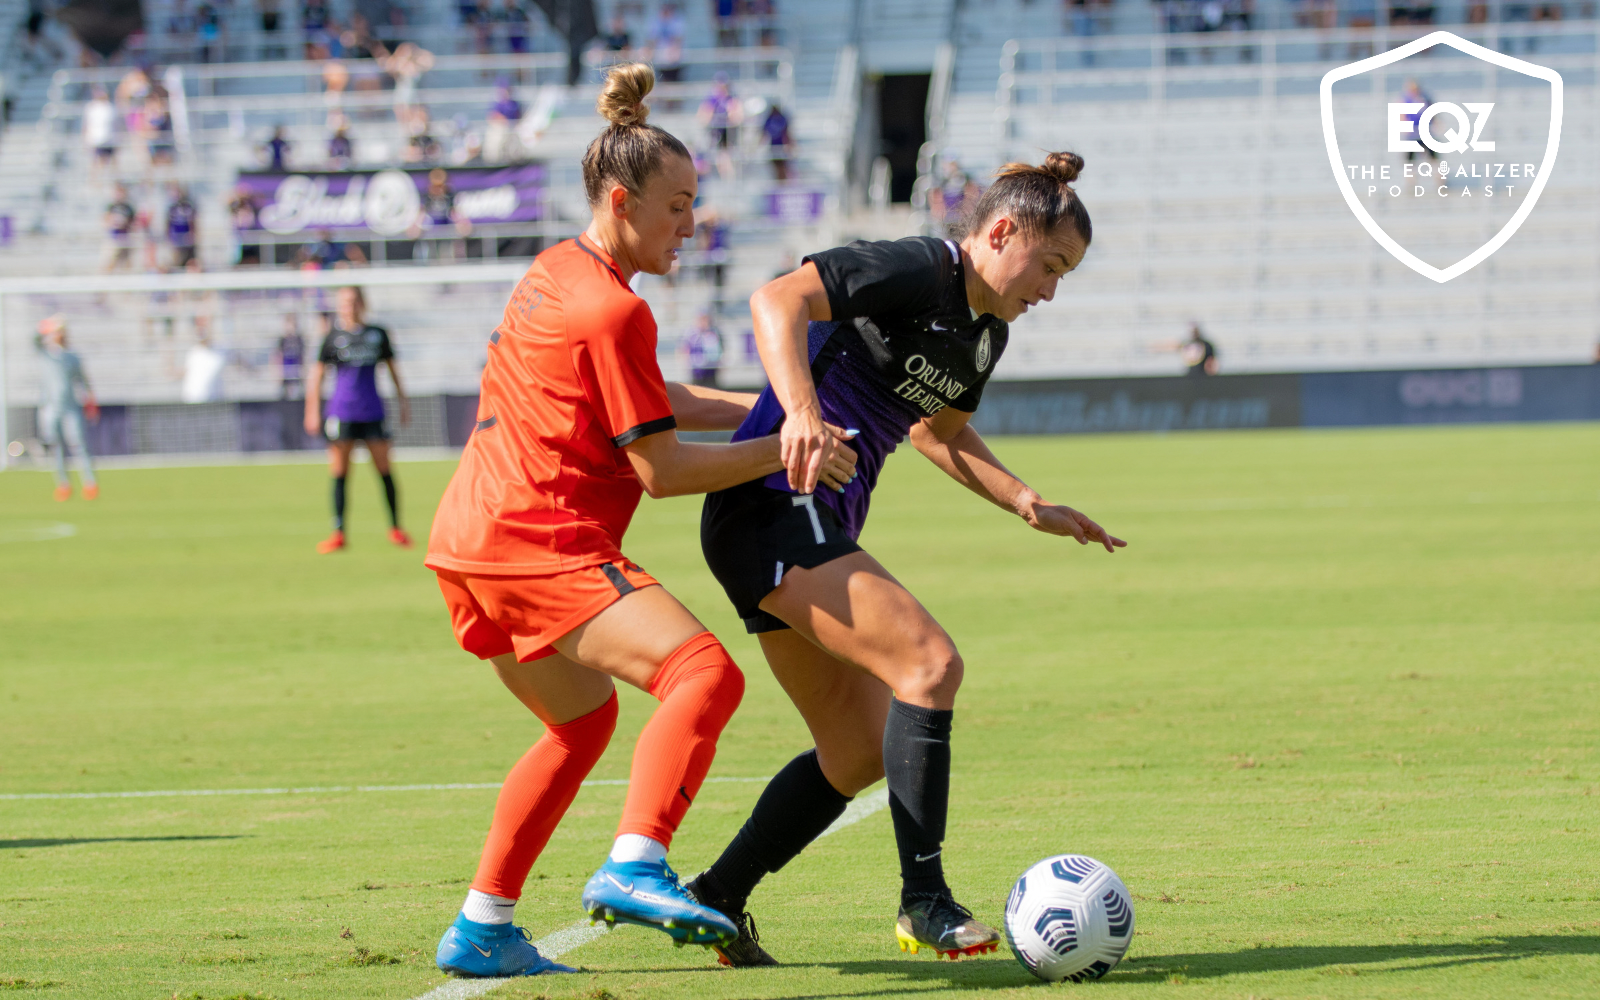 Orlando Pride defender Ali Riley dribbles the ball while defend by a player on the Houston Dash